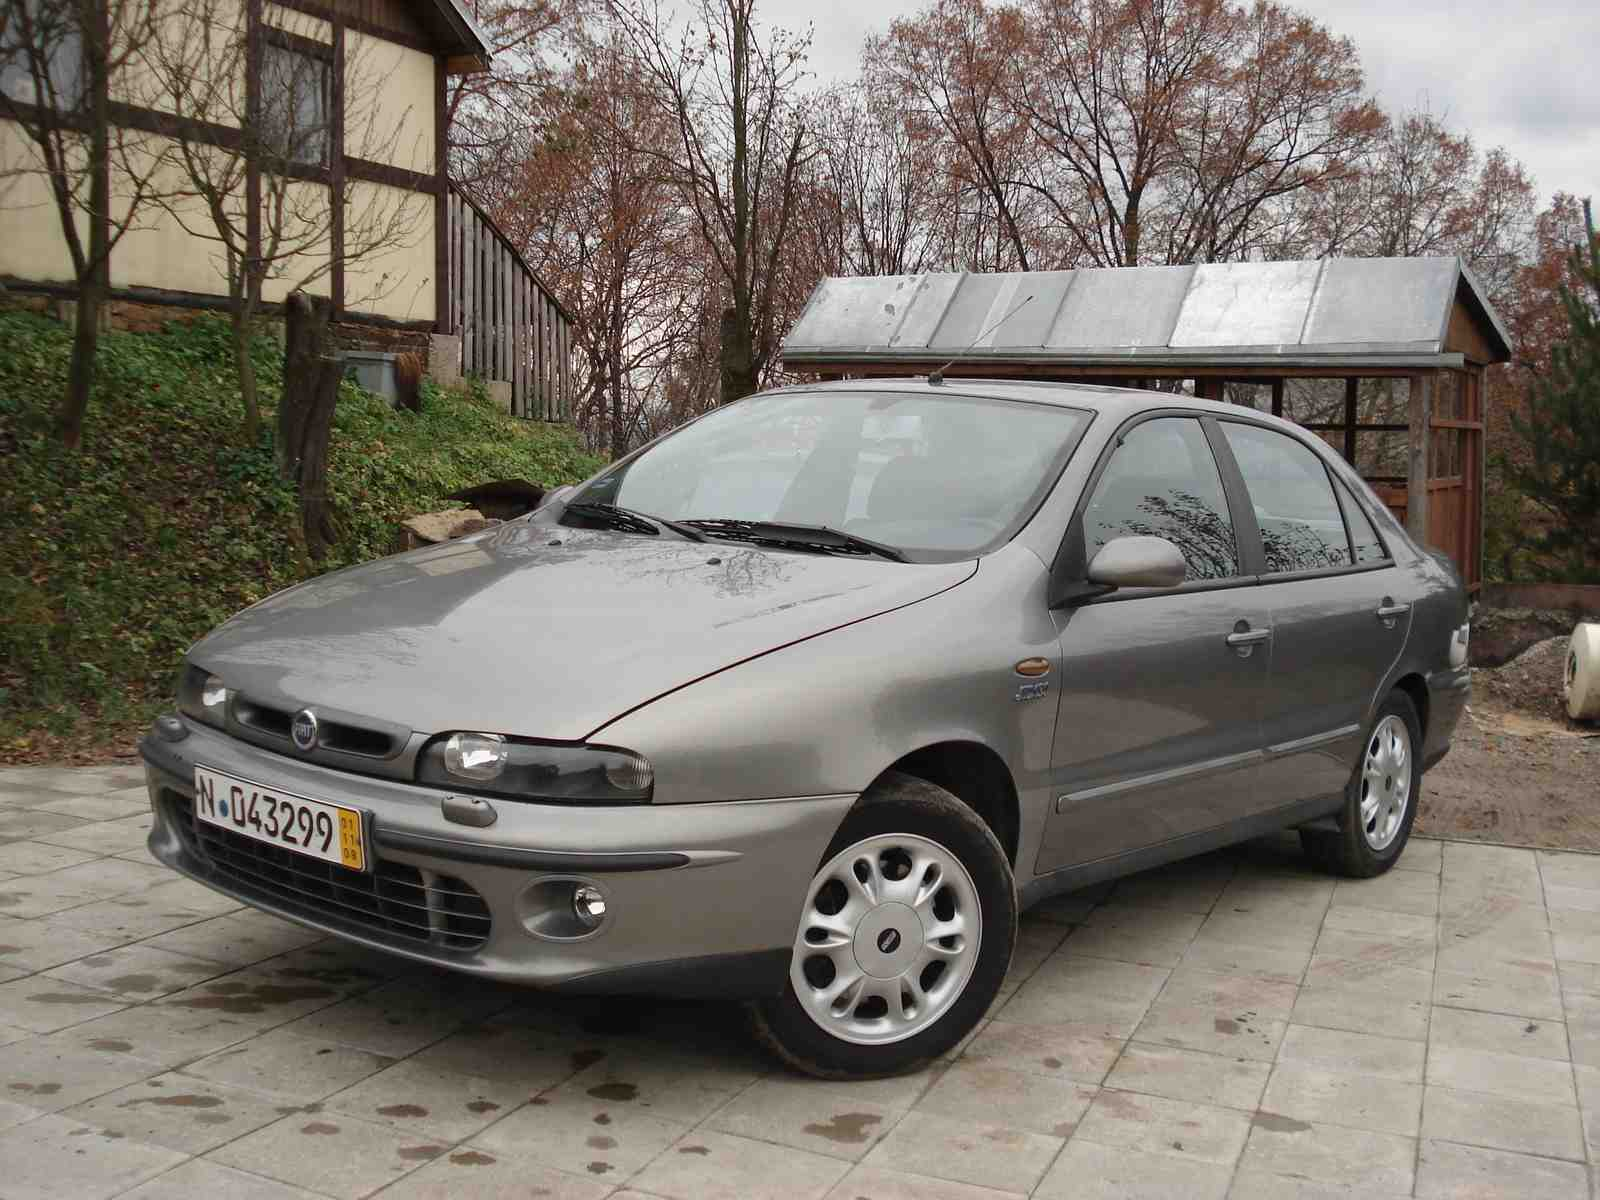 Fiat Marea & Marea Weekend Workshop Service Repair Manual 1996-2002 (4,000+  Pages